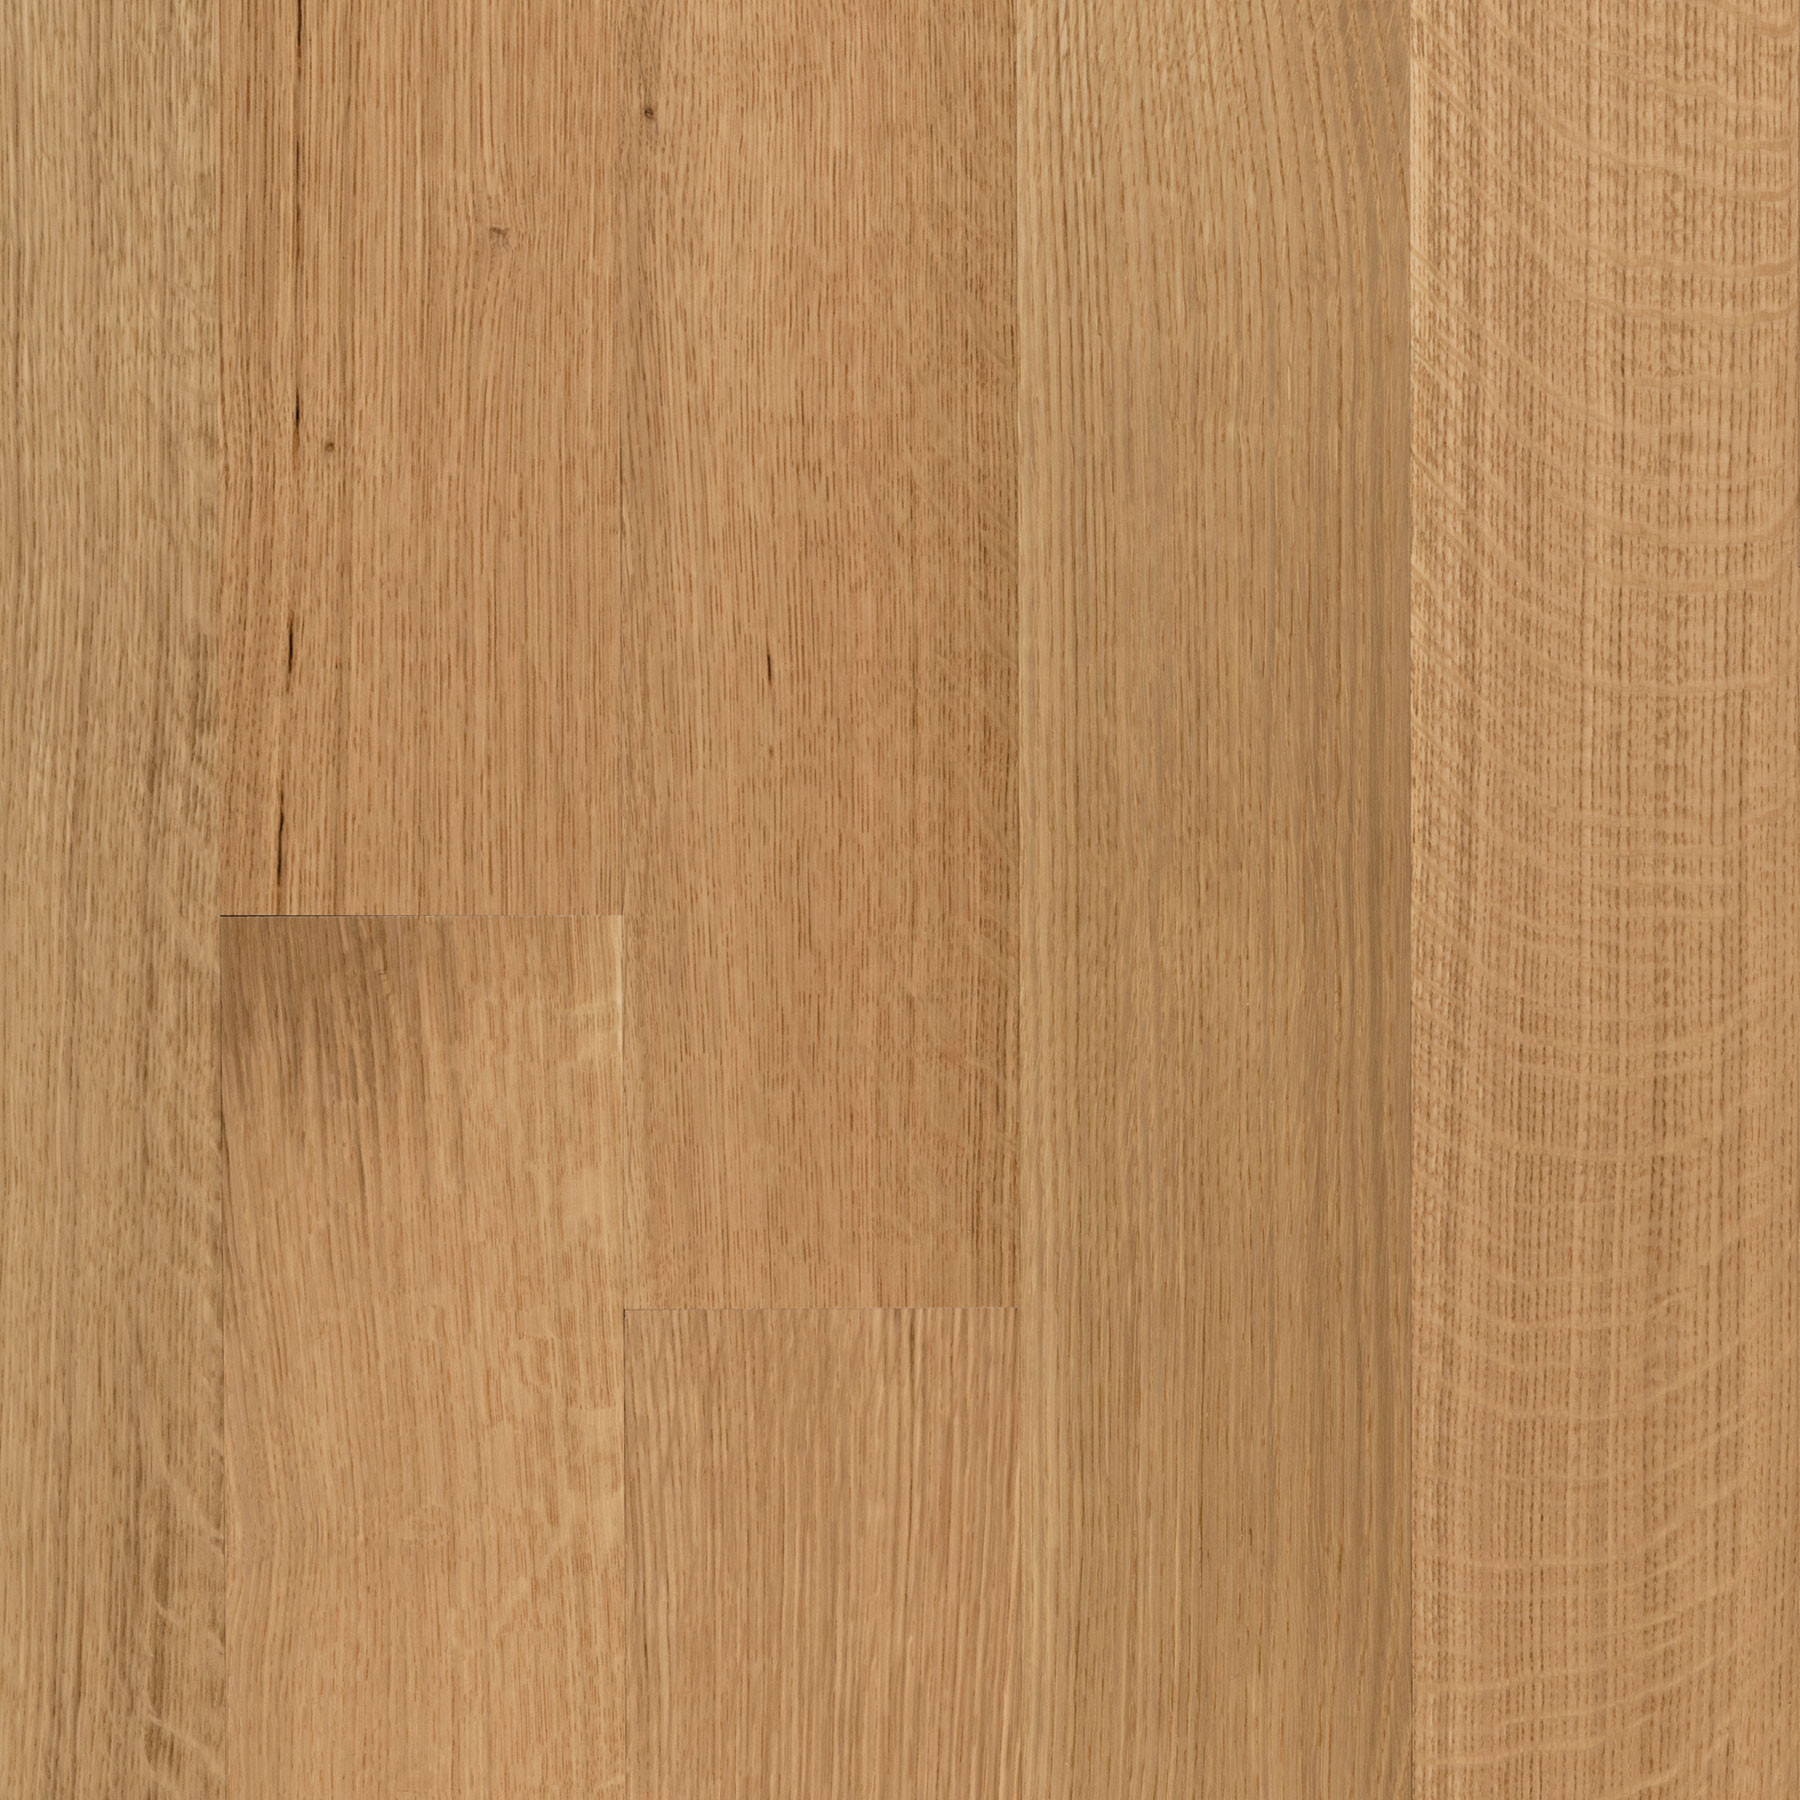 White Oak Hardwood Floor Colors Of American Quartered White Oak 5″ Etx Surfaces In American Quartered White Oak 5″